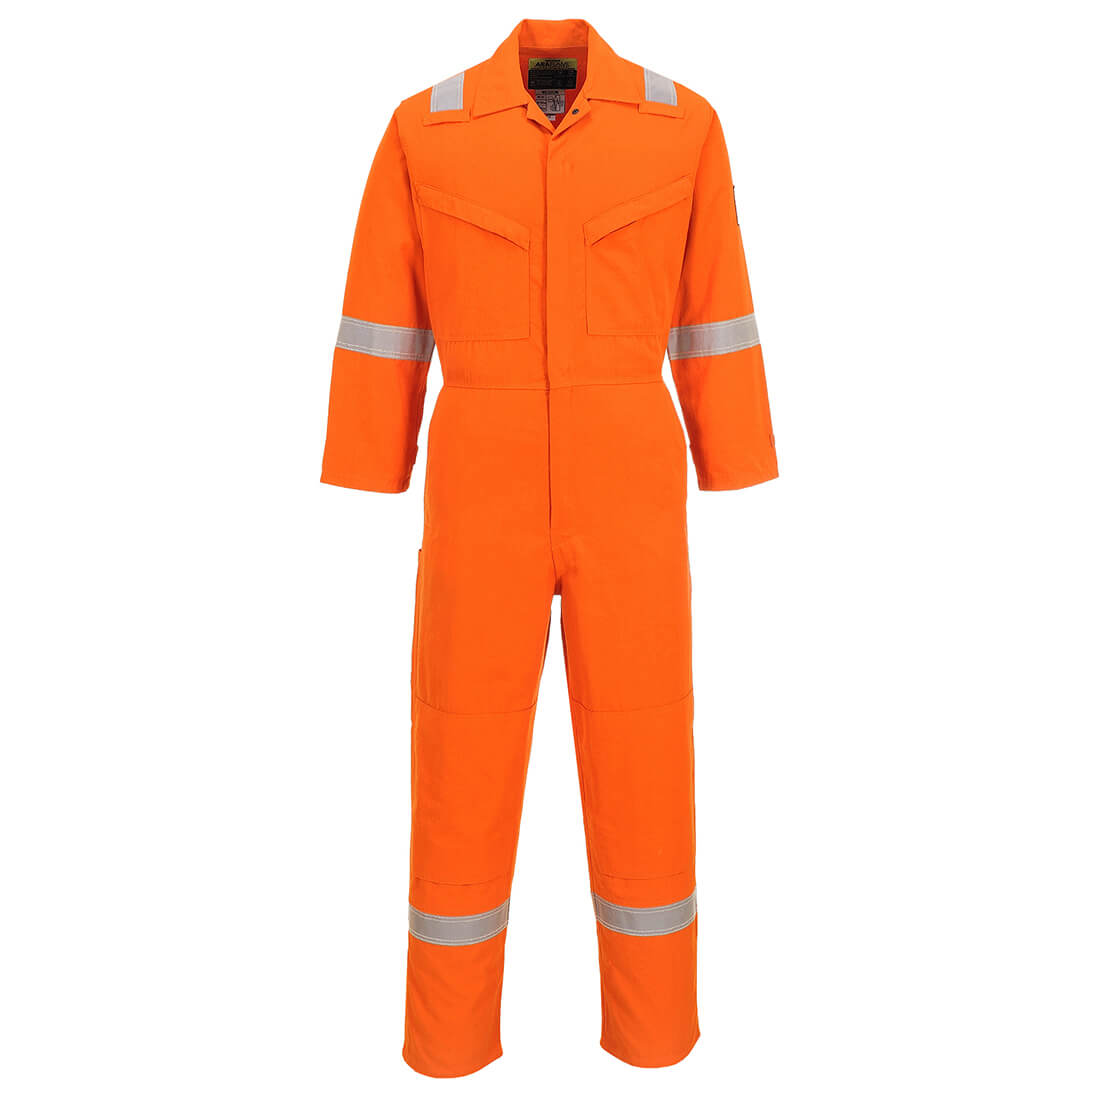 Image of Araflame Flame Resistant Overall Orange Orange 2XL 32""